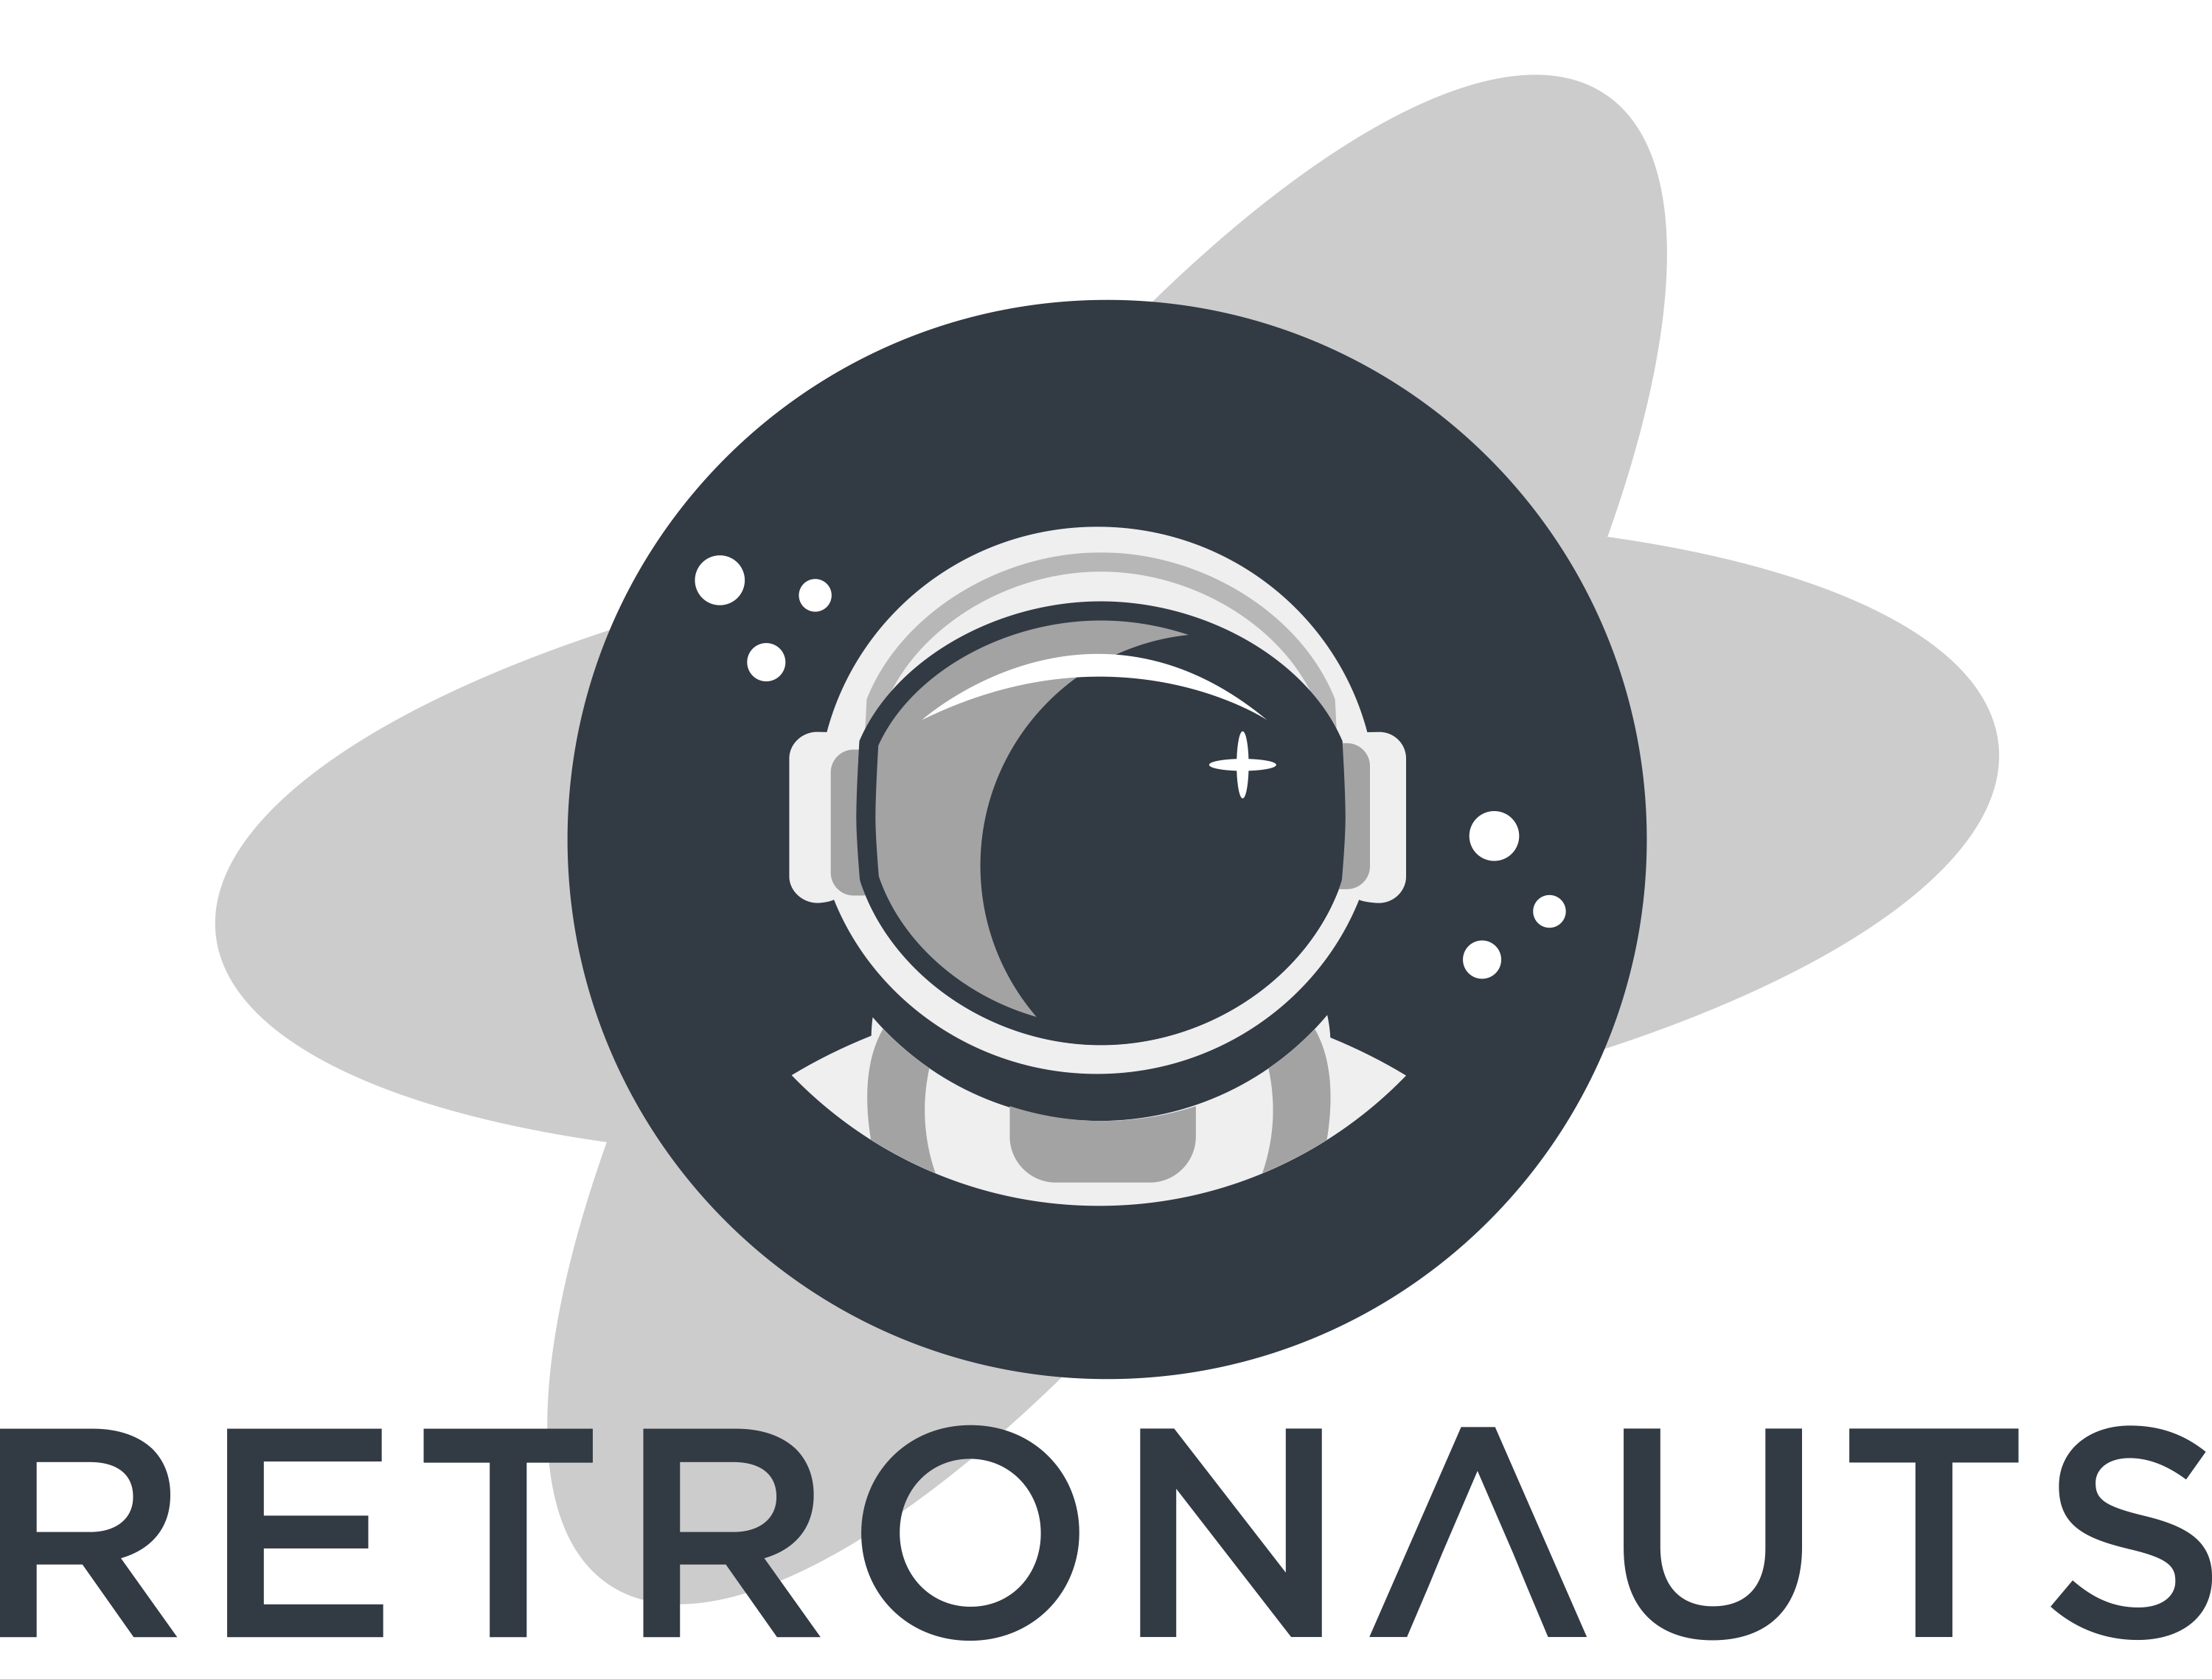 Retronauts Episode 258: 2009 (It's Retro Now)